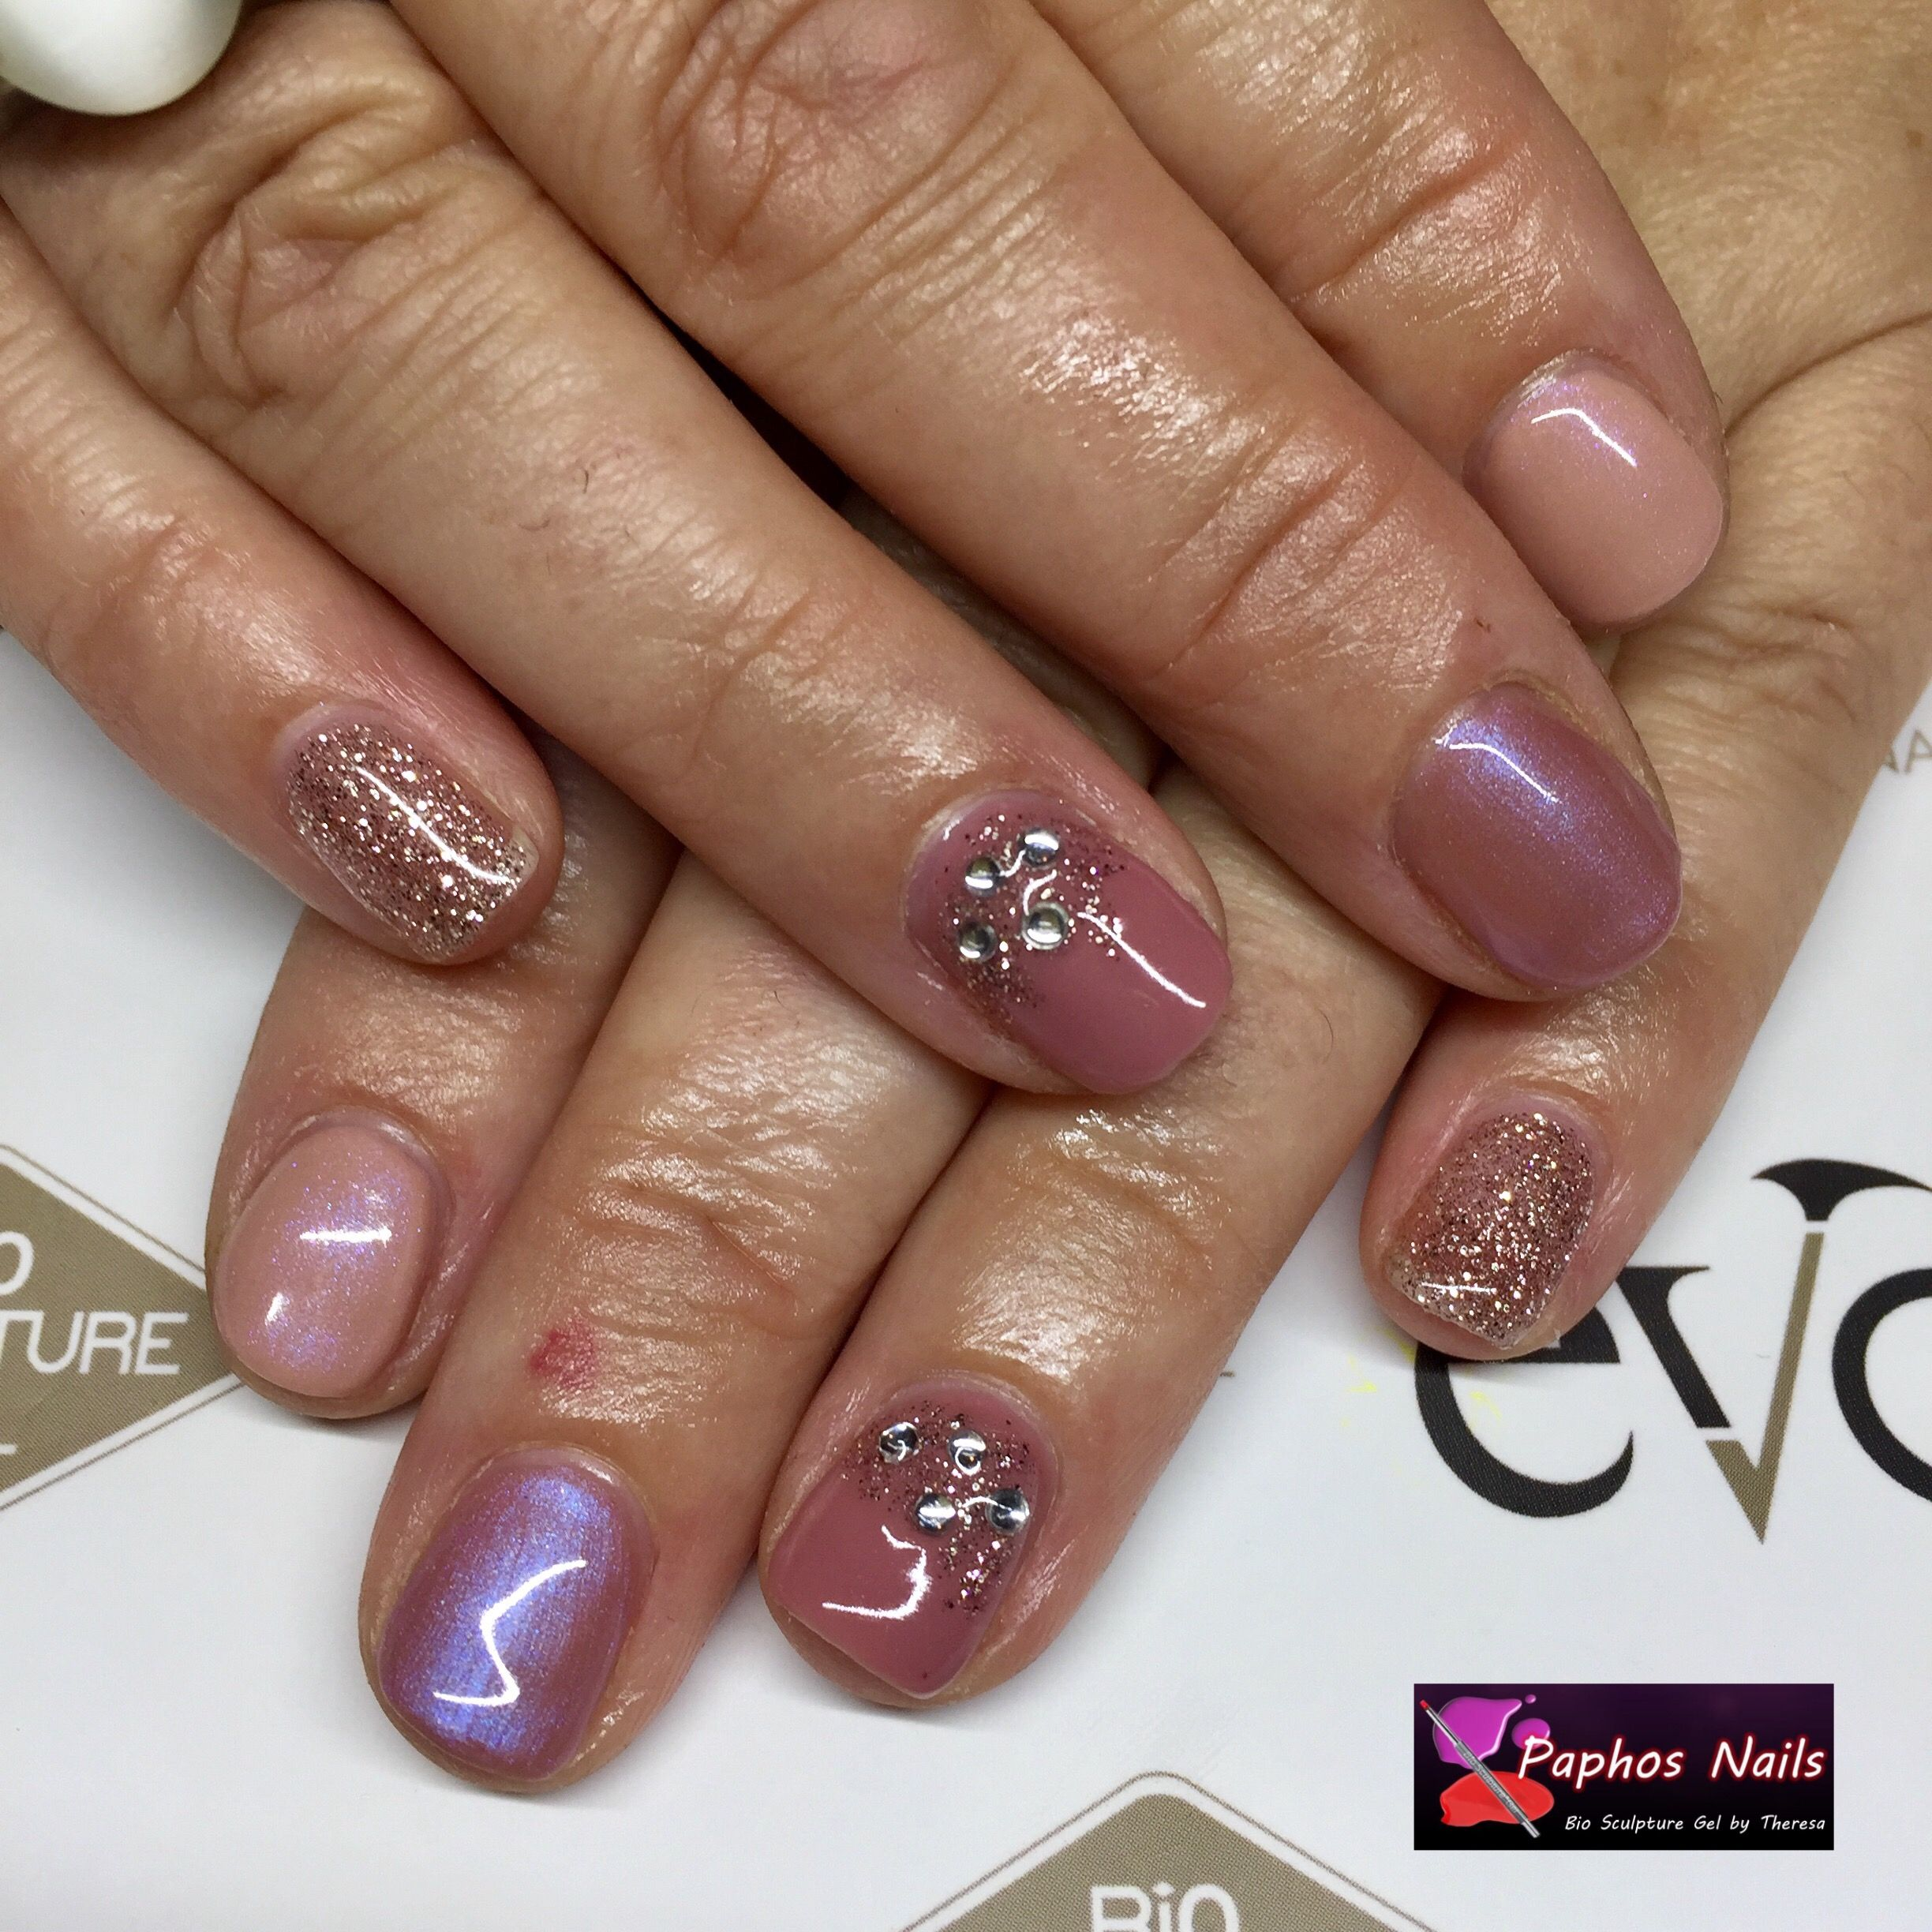 Lovely colour combination with #glitter and #gems #magicalmerrygoround #shimmeringjoy #shinelikeadiscoball #soprano #paphosnails #biosculpturebytheresa #kissonerganails